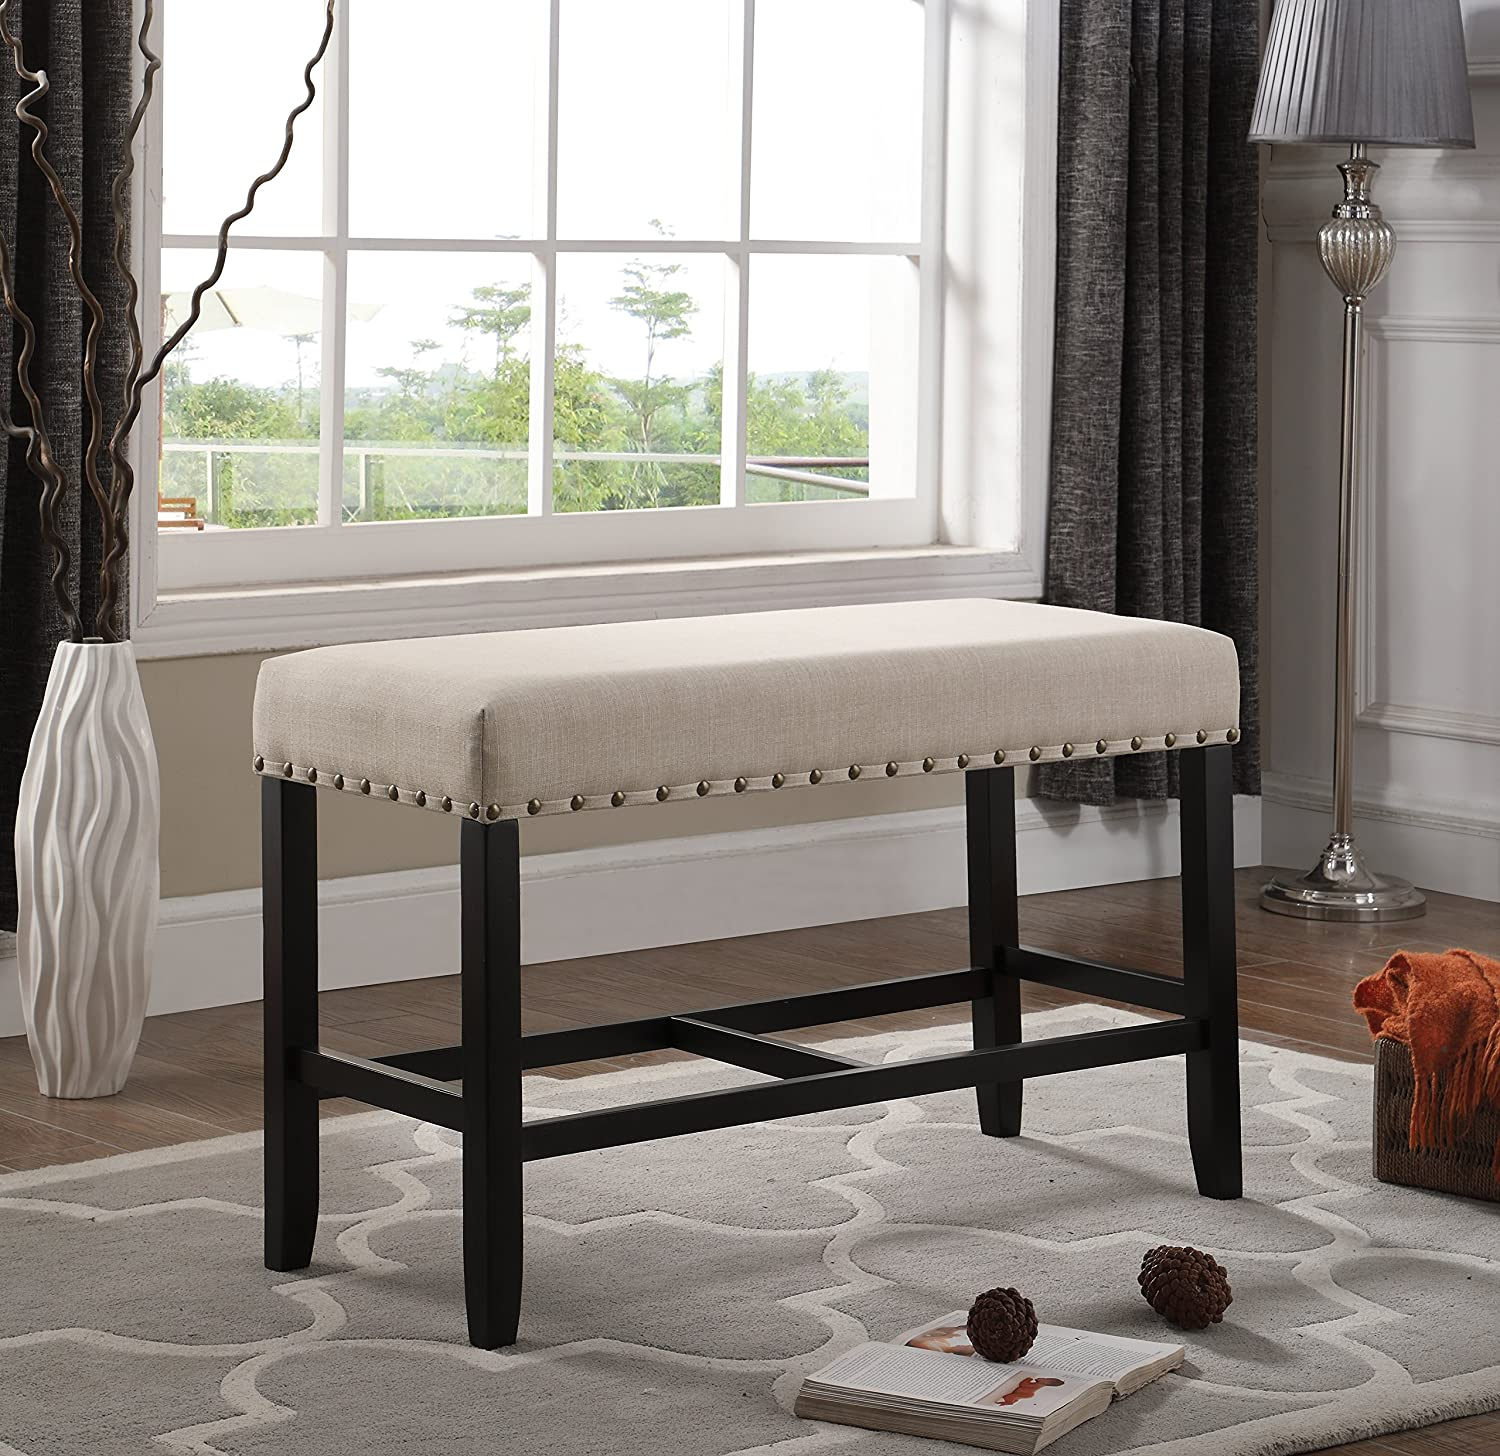 Roundhill Furniture Biony Fabric Counter Height Dining Bench with Nailhead Trim, Tan